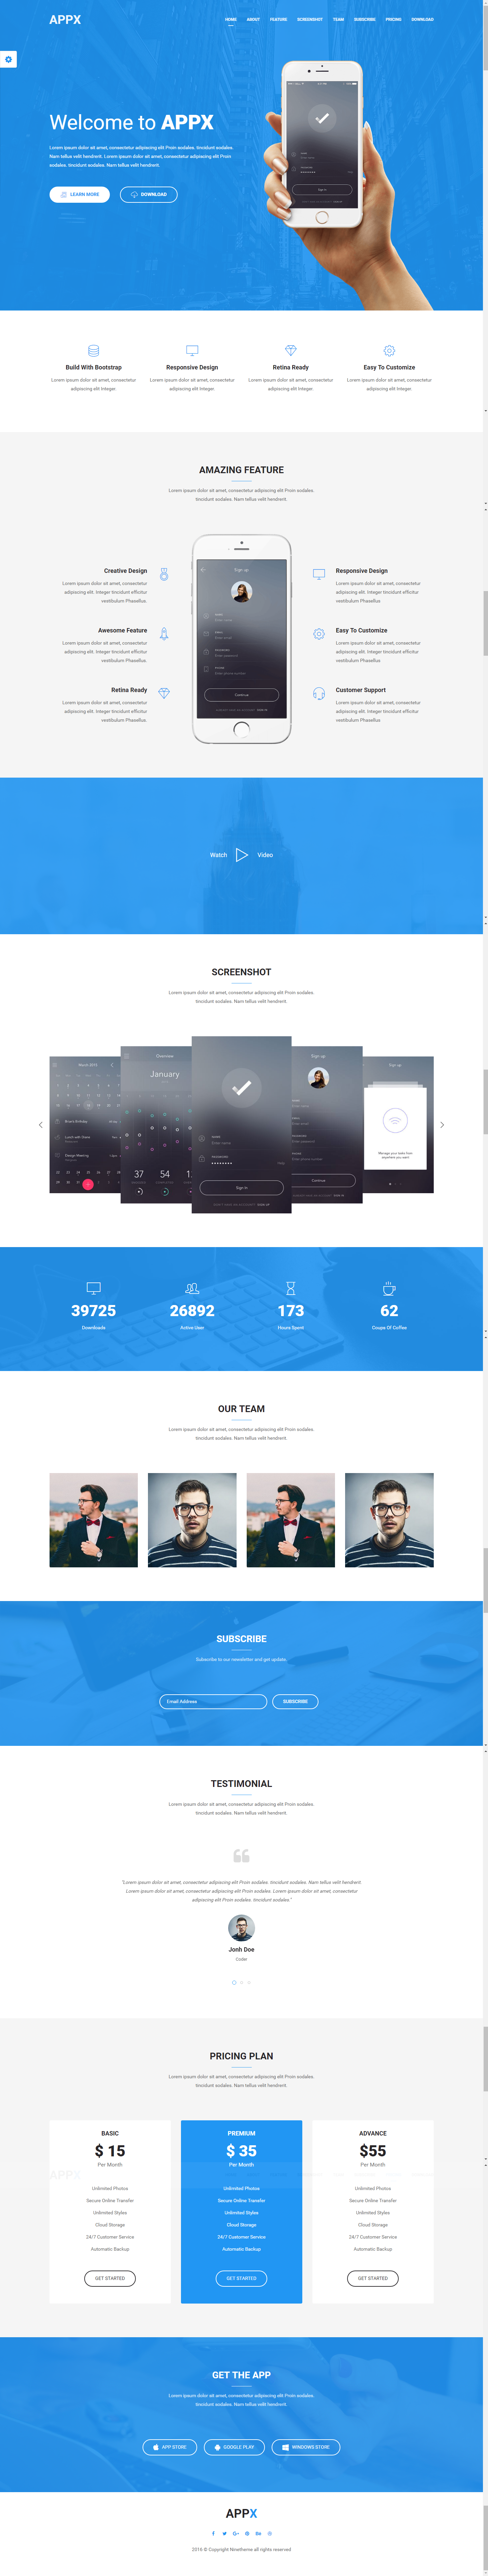 Appx - Responsive WordPress App Introduction Page Theme | Wordpress ...